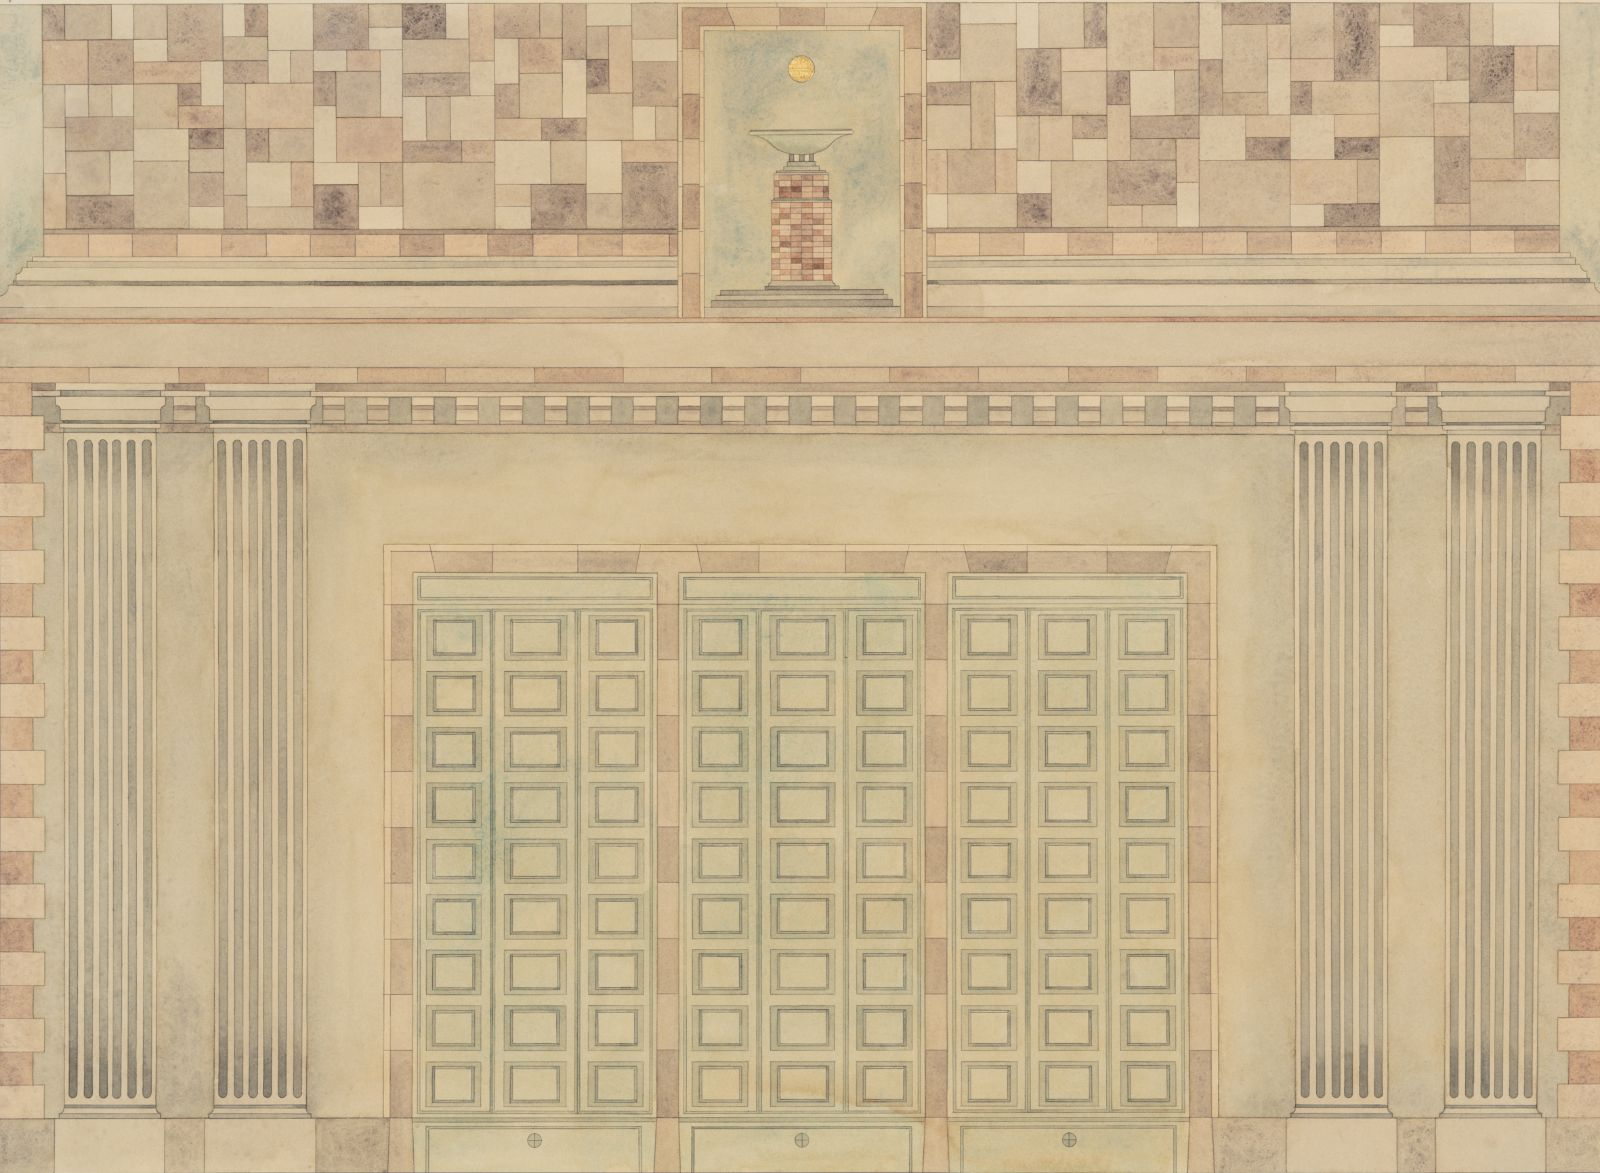 Tempel, 2014, watercolour and gold leaf on paper, 52 x 72 cm